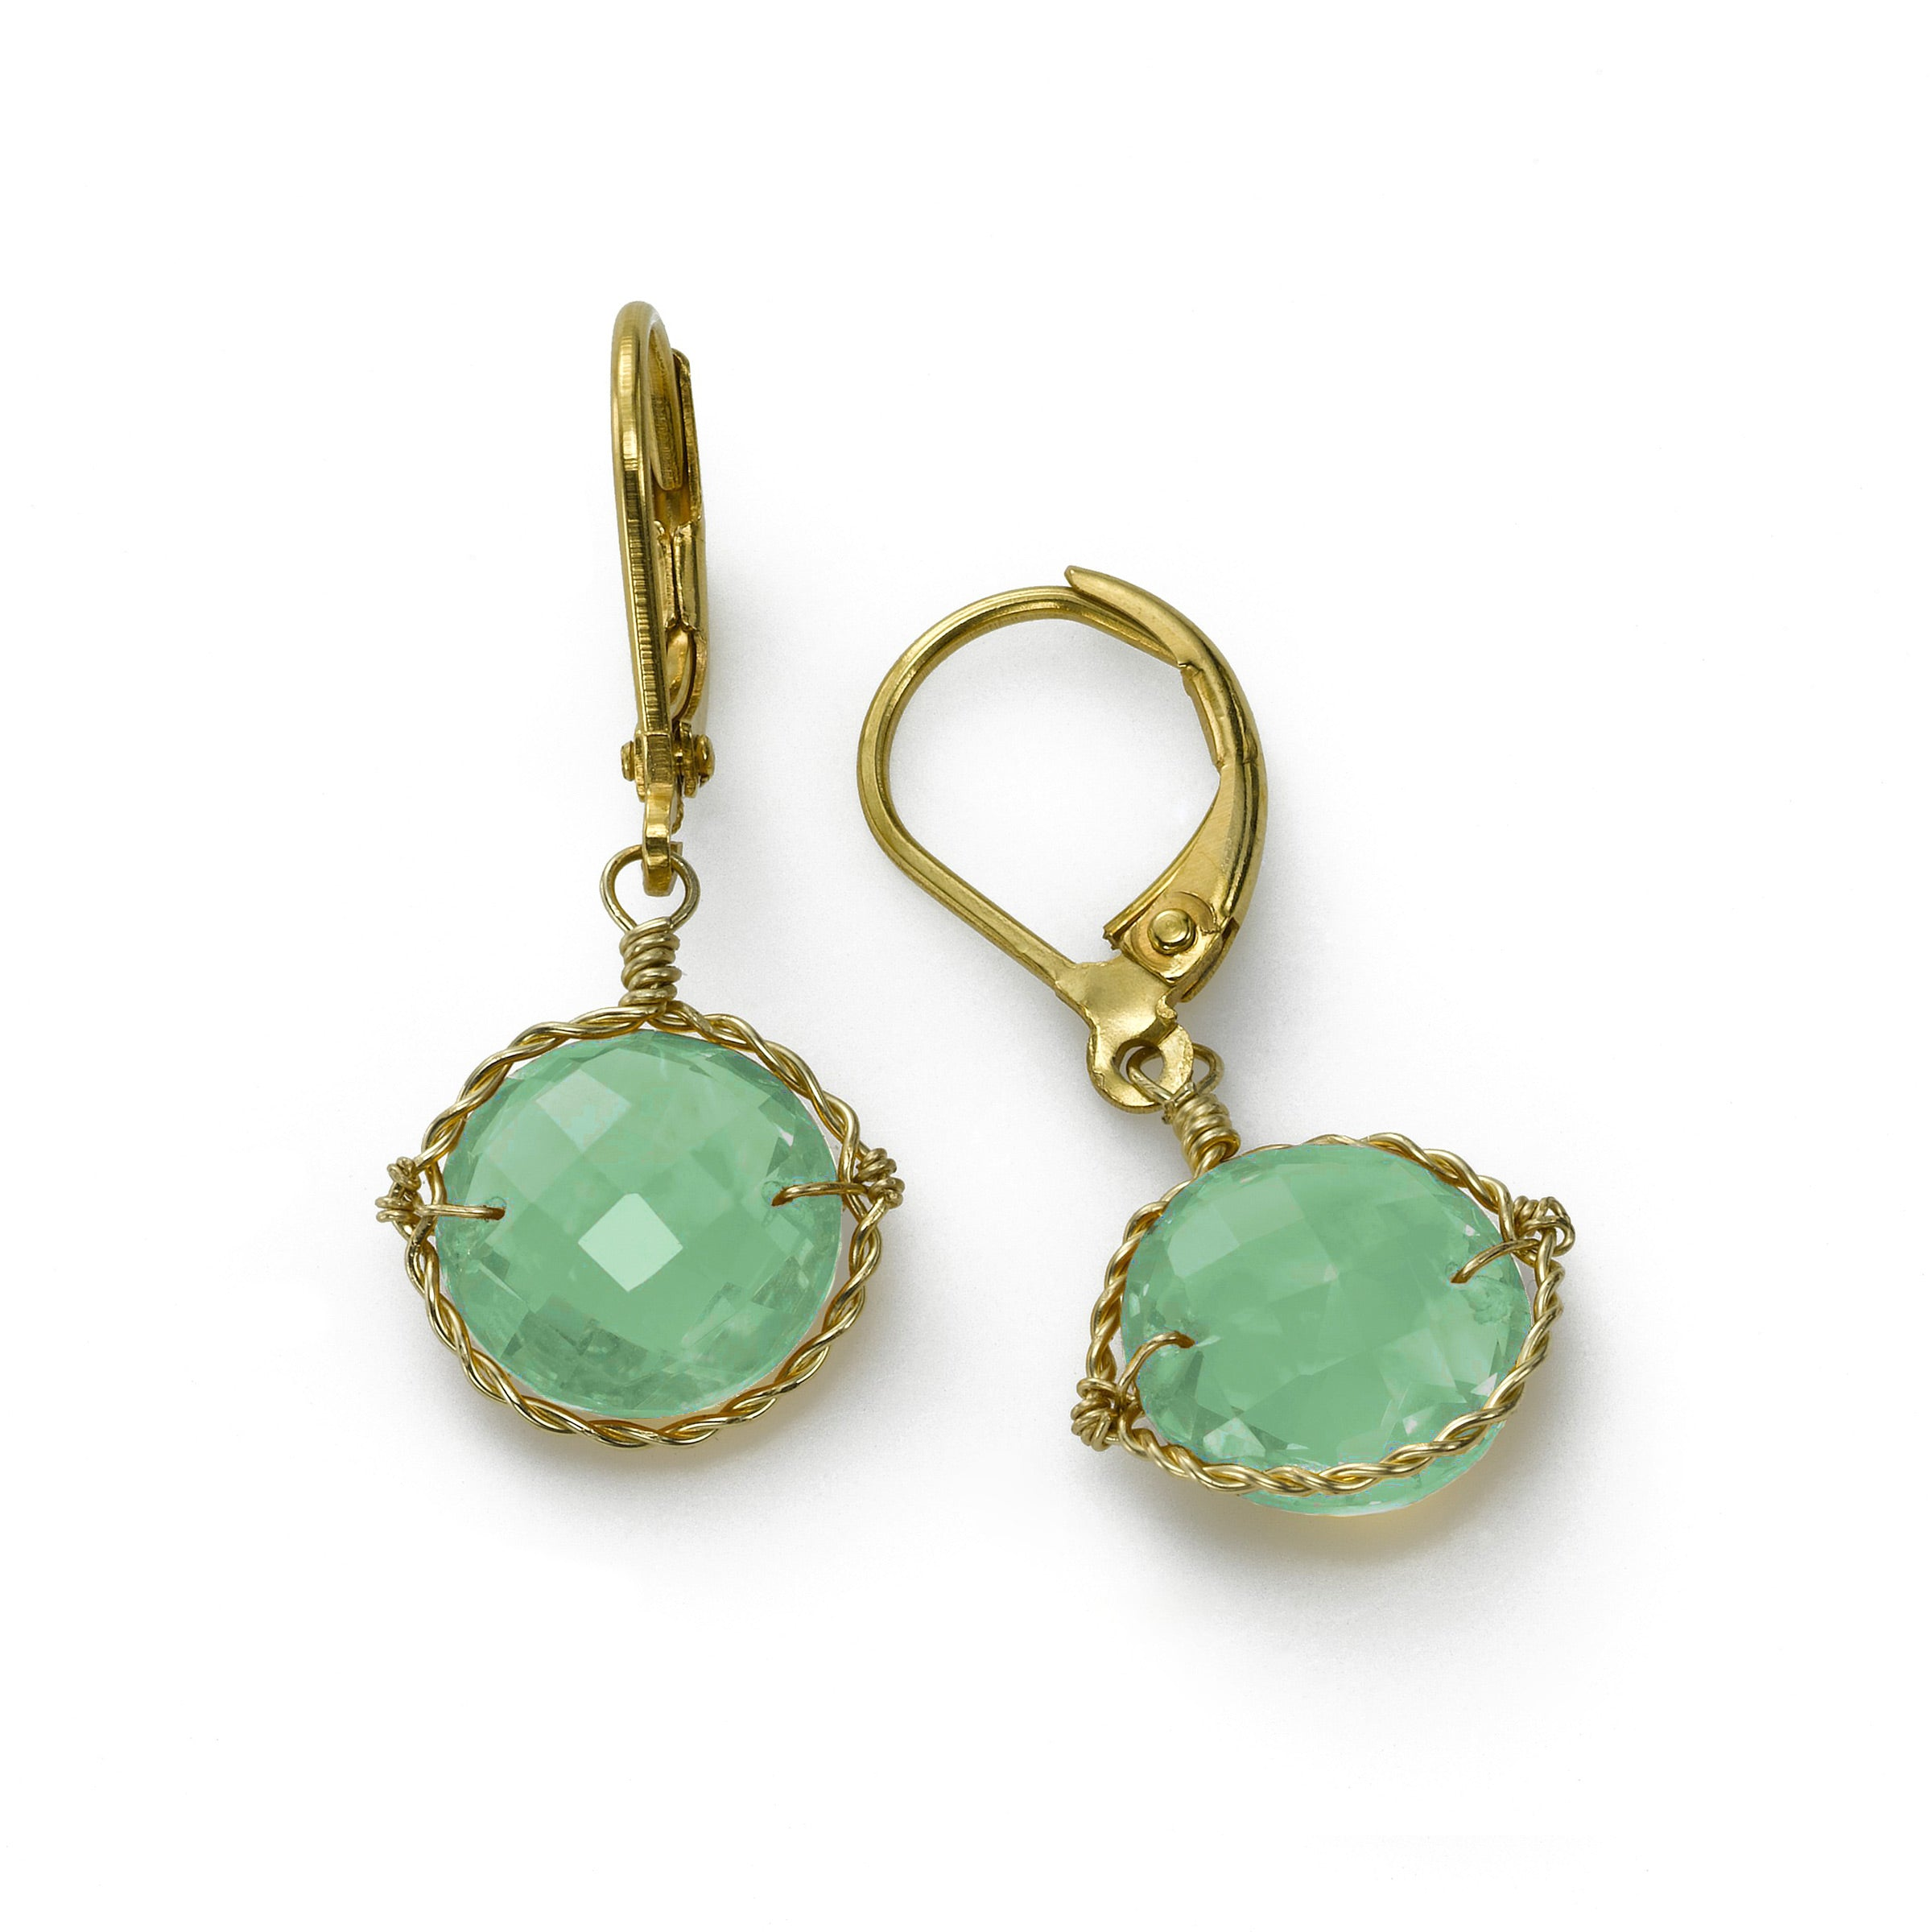 Chrysoprase Drop Earrings, 14 Karat Gold Filled